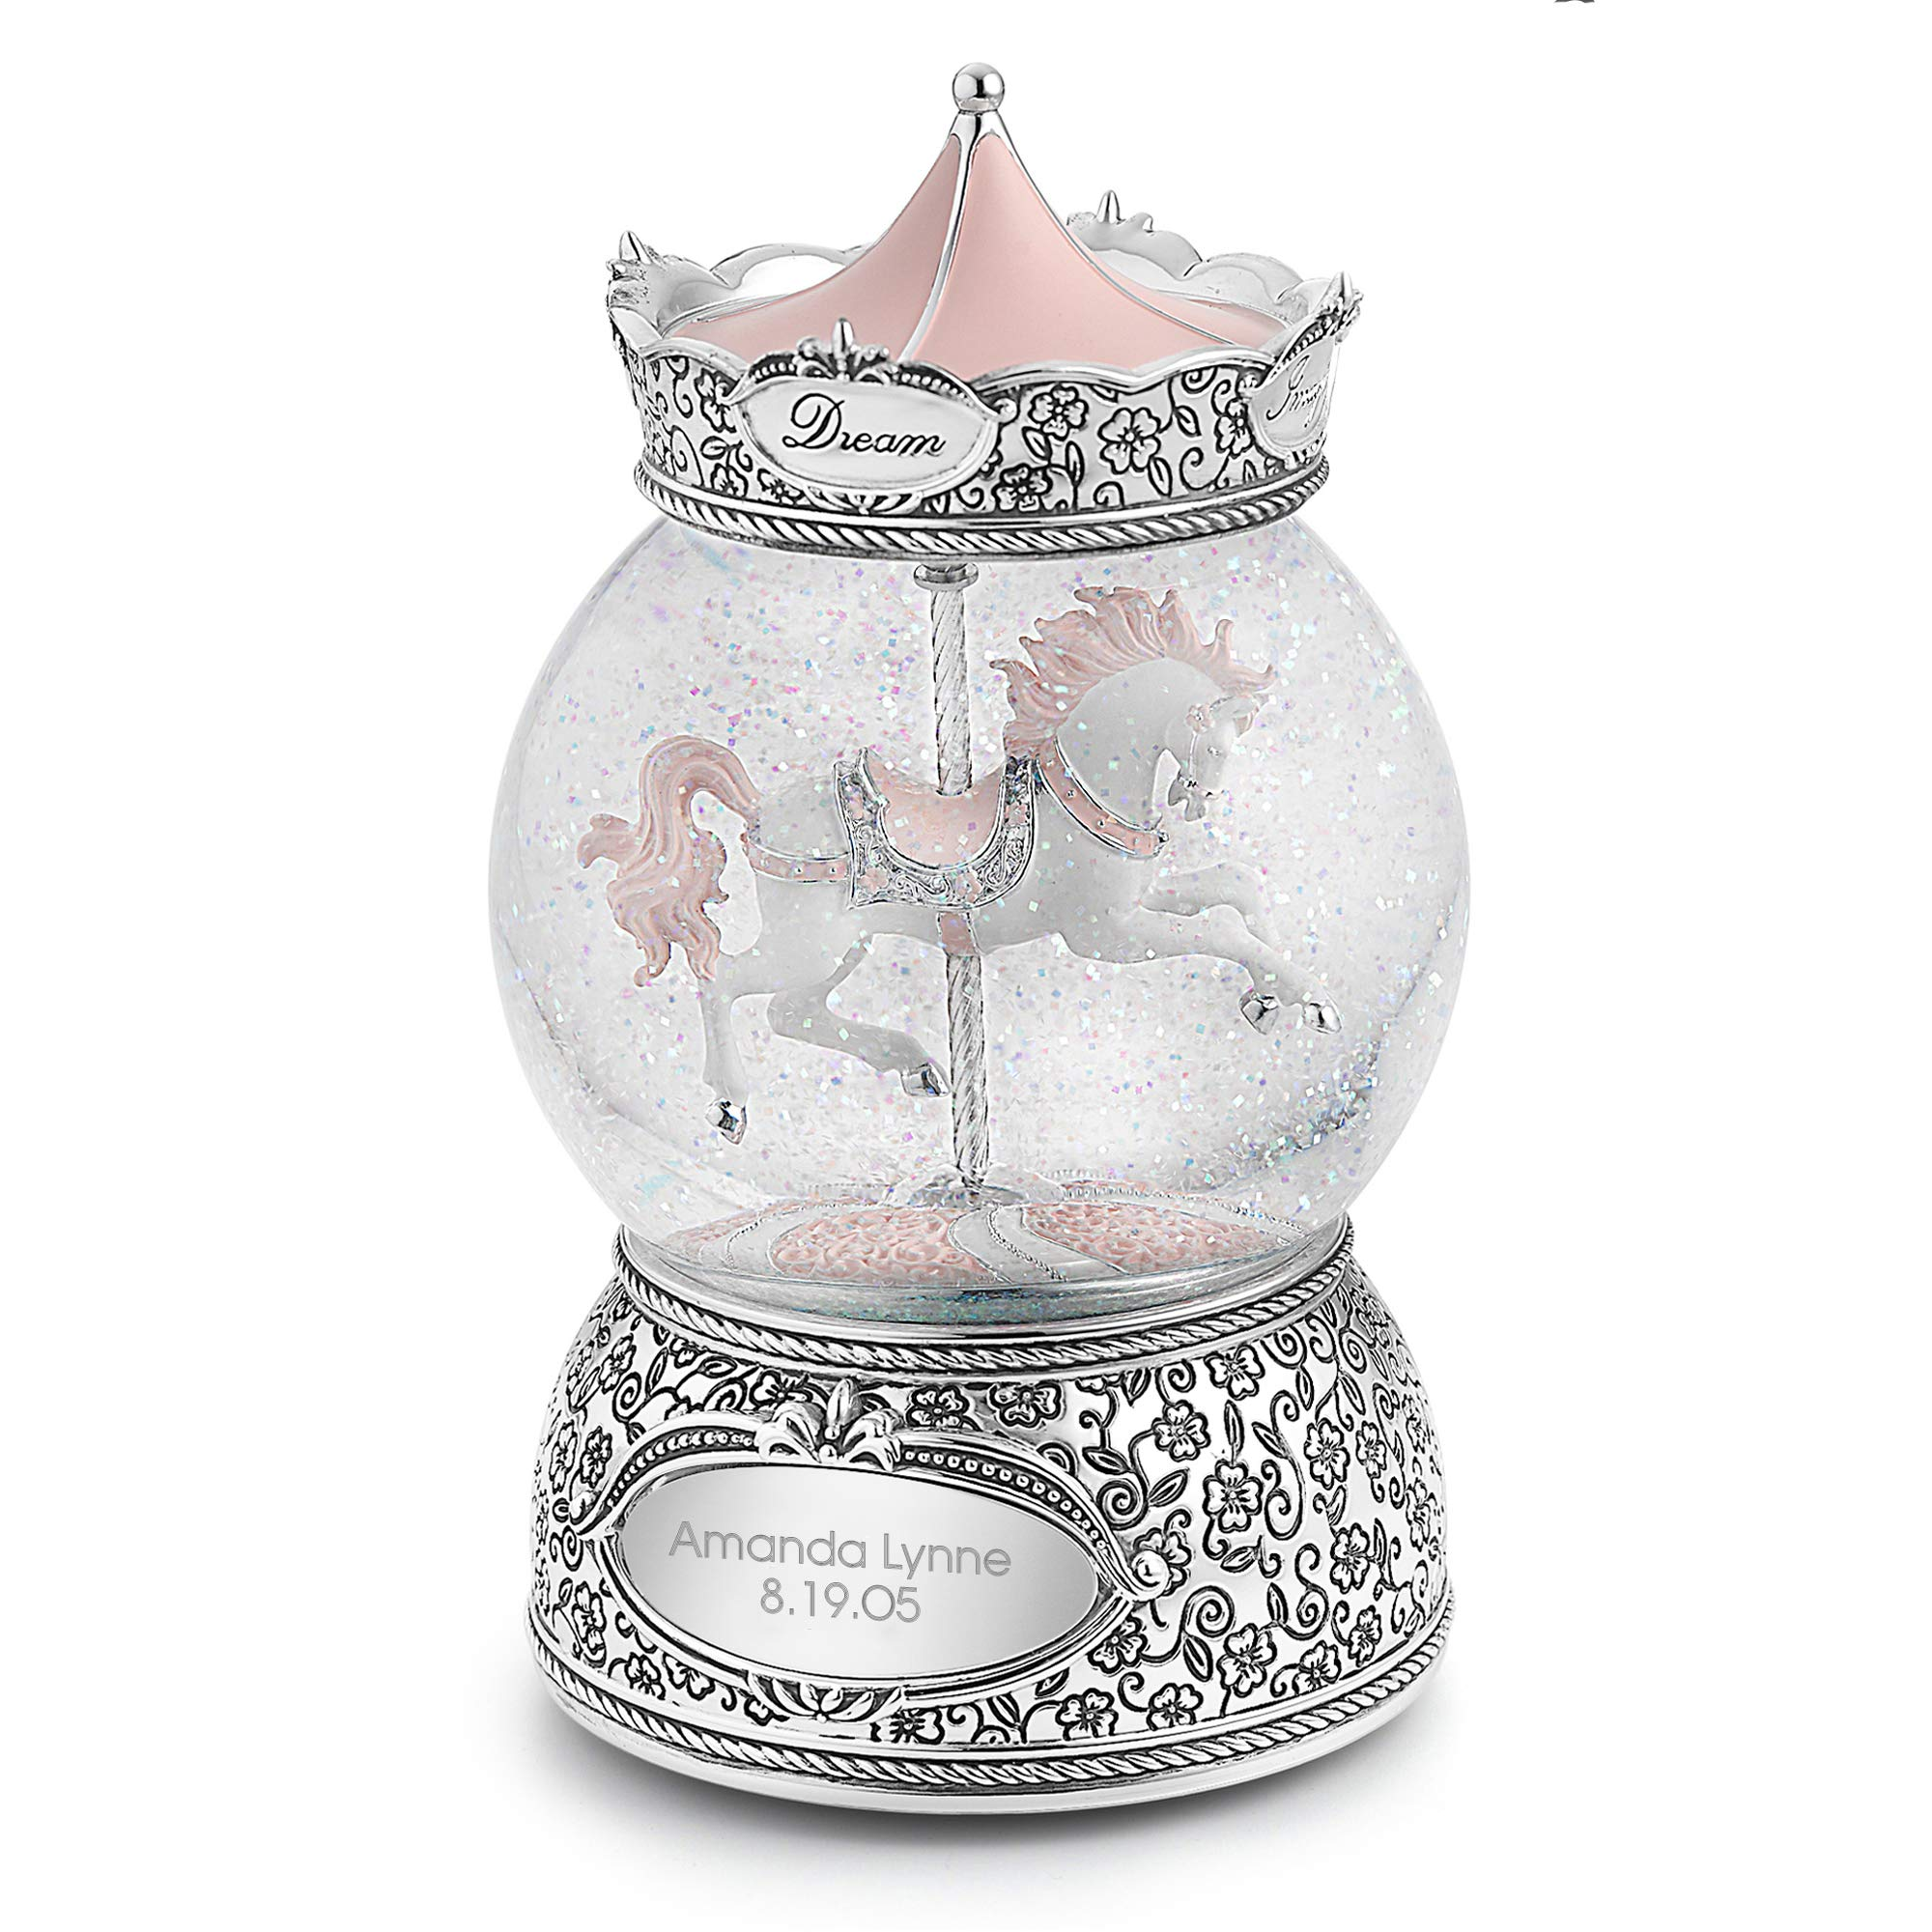 Things Remembered Personalized Carousel Horse Musical Snow Globe with Engraving Included by Things Remembered